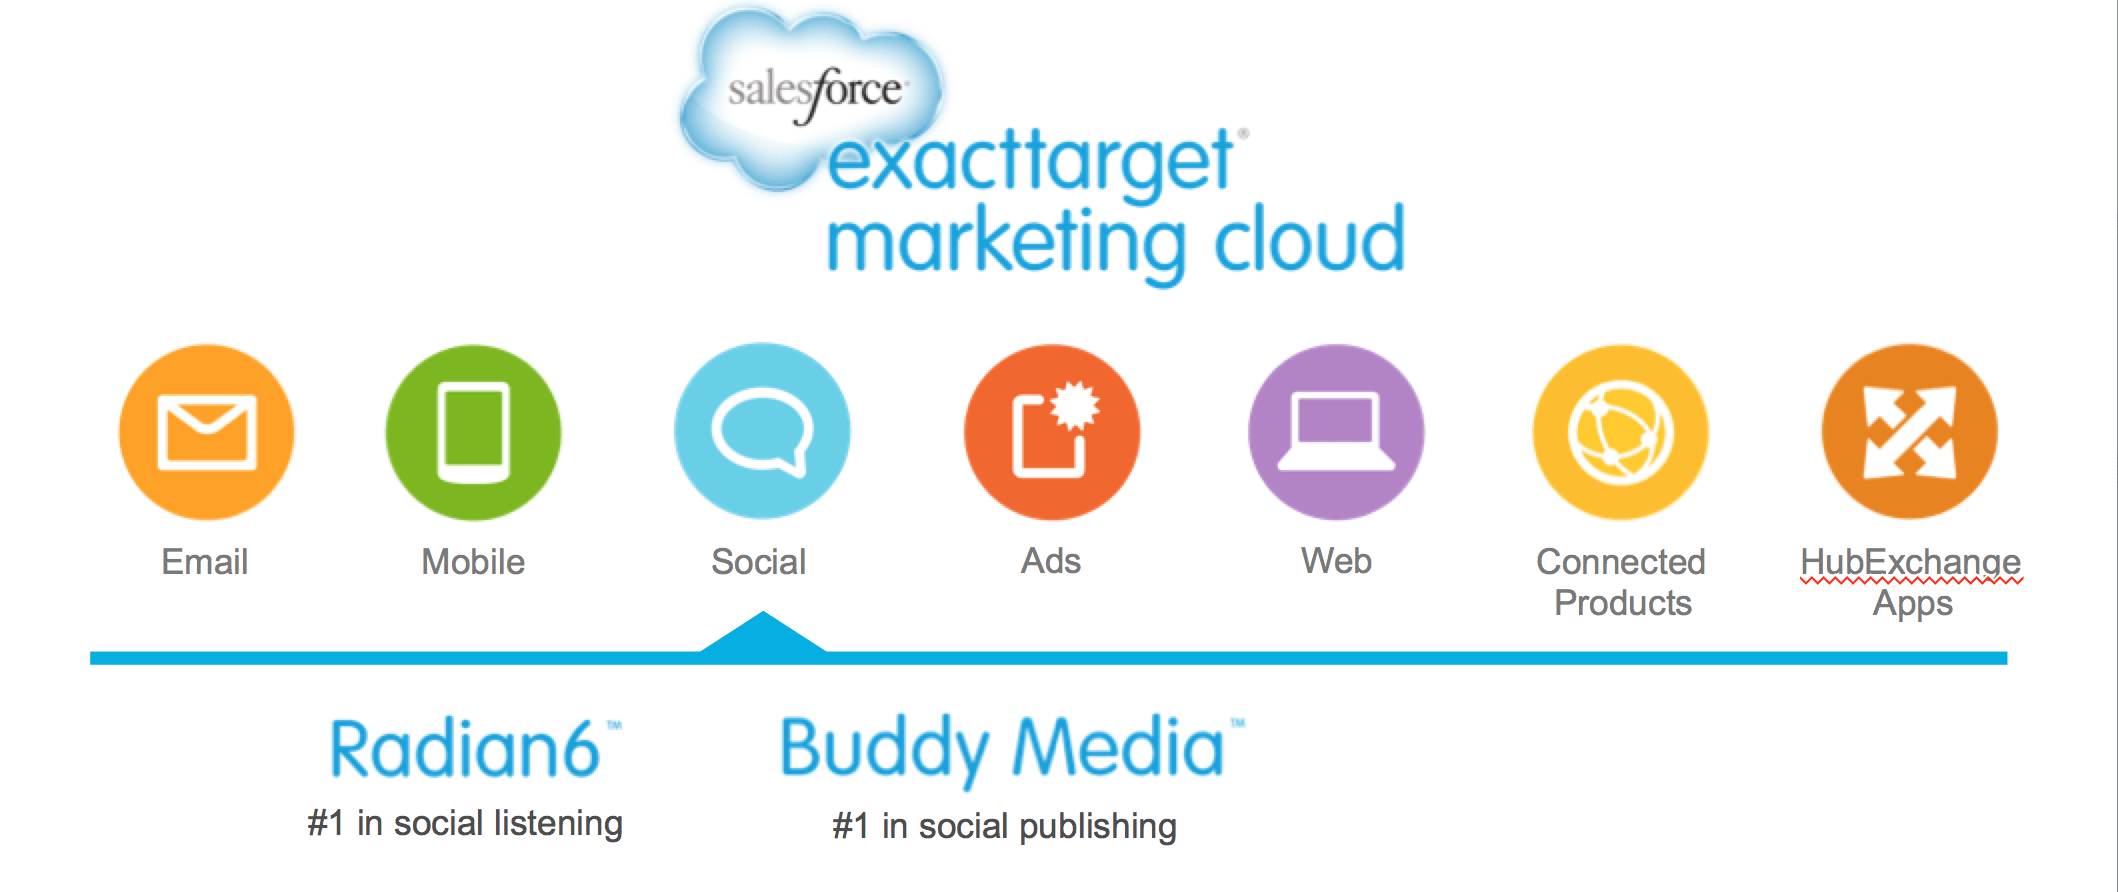 Salesforce's ExactTarget Marketing Cloud combines Radian6 ...